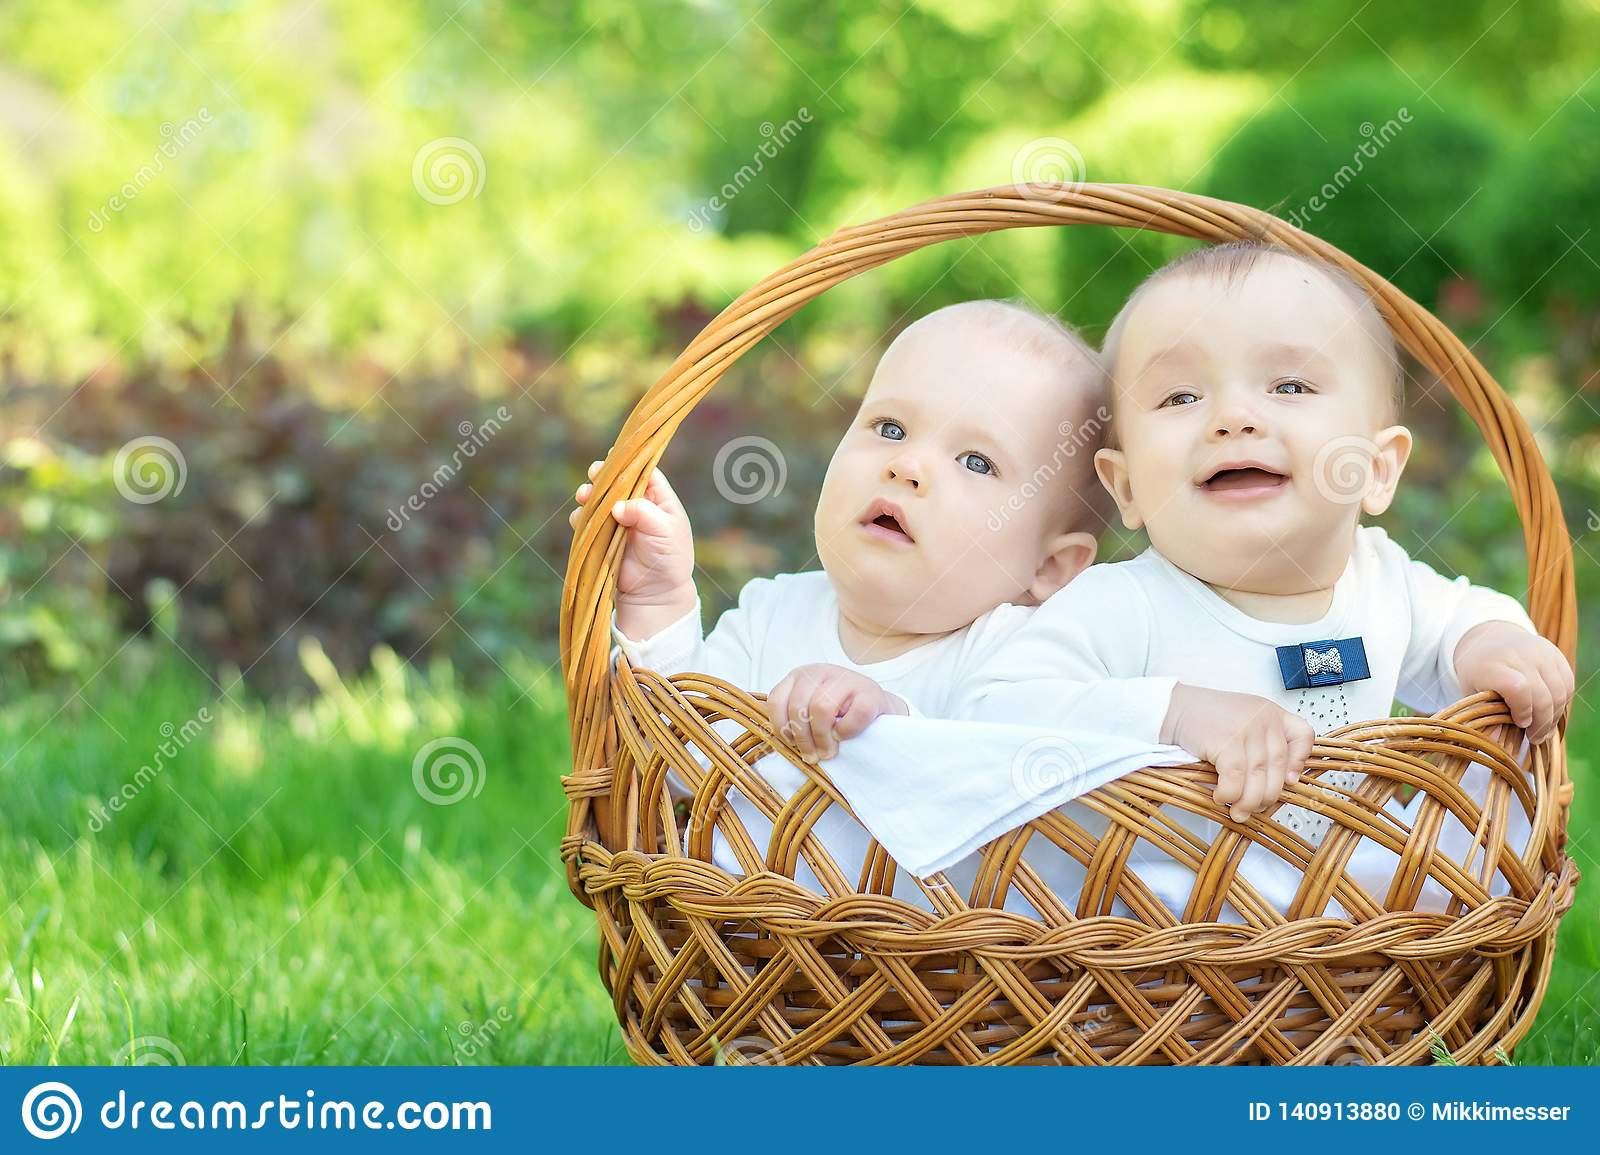 Outdoor activity for families with kids: Portrait of two little infant boys sitting in wicker basket on grass on picnic